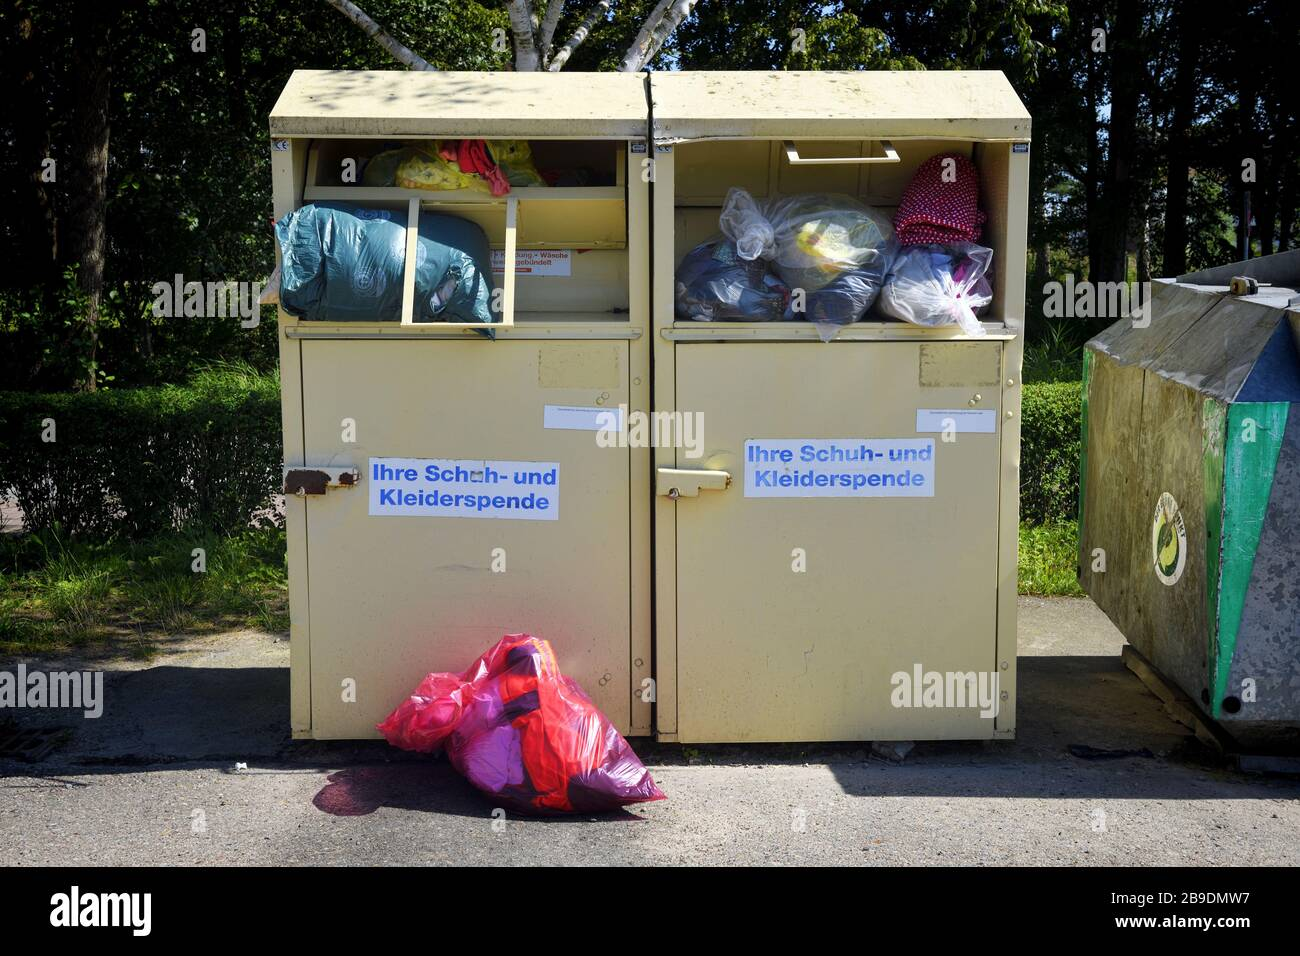 Old clothes container in Schleswig - Holstein, Altkleidercontainer in Schleswig-Holstein Stock Photo